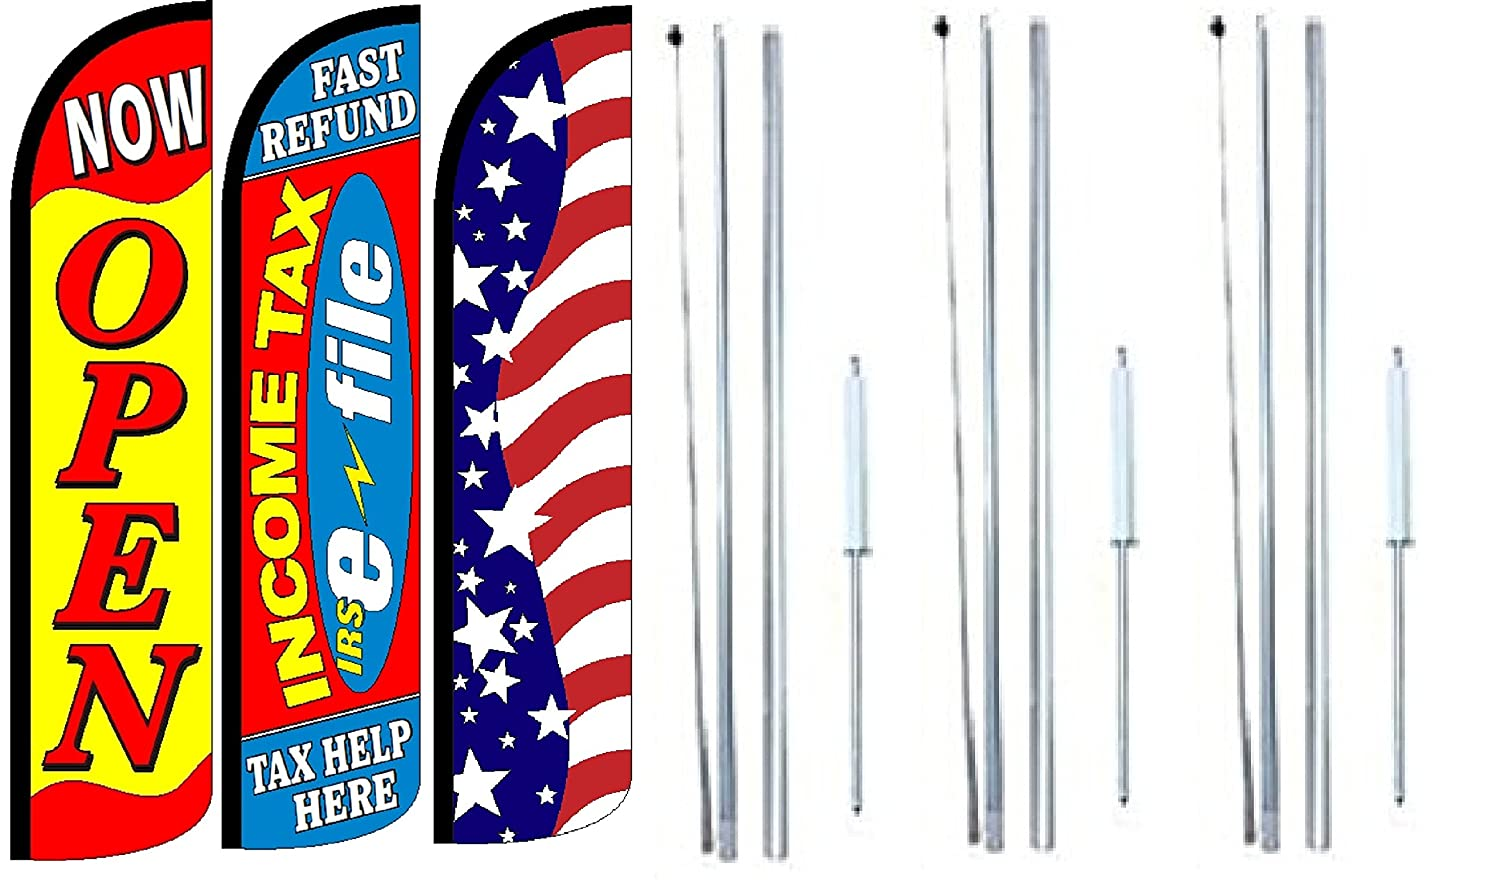 Pack of 4 FOODMART Snacks Drinks Smokes Welcome King Windless Feather Flag Sign Kit with Complete Hybrid Pole Set